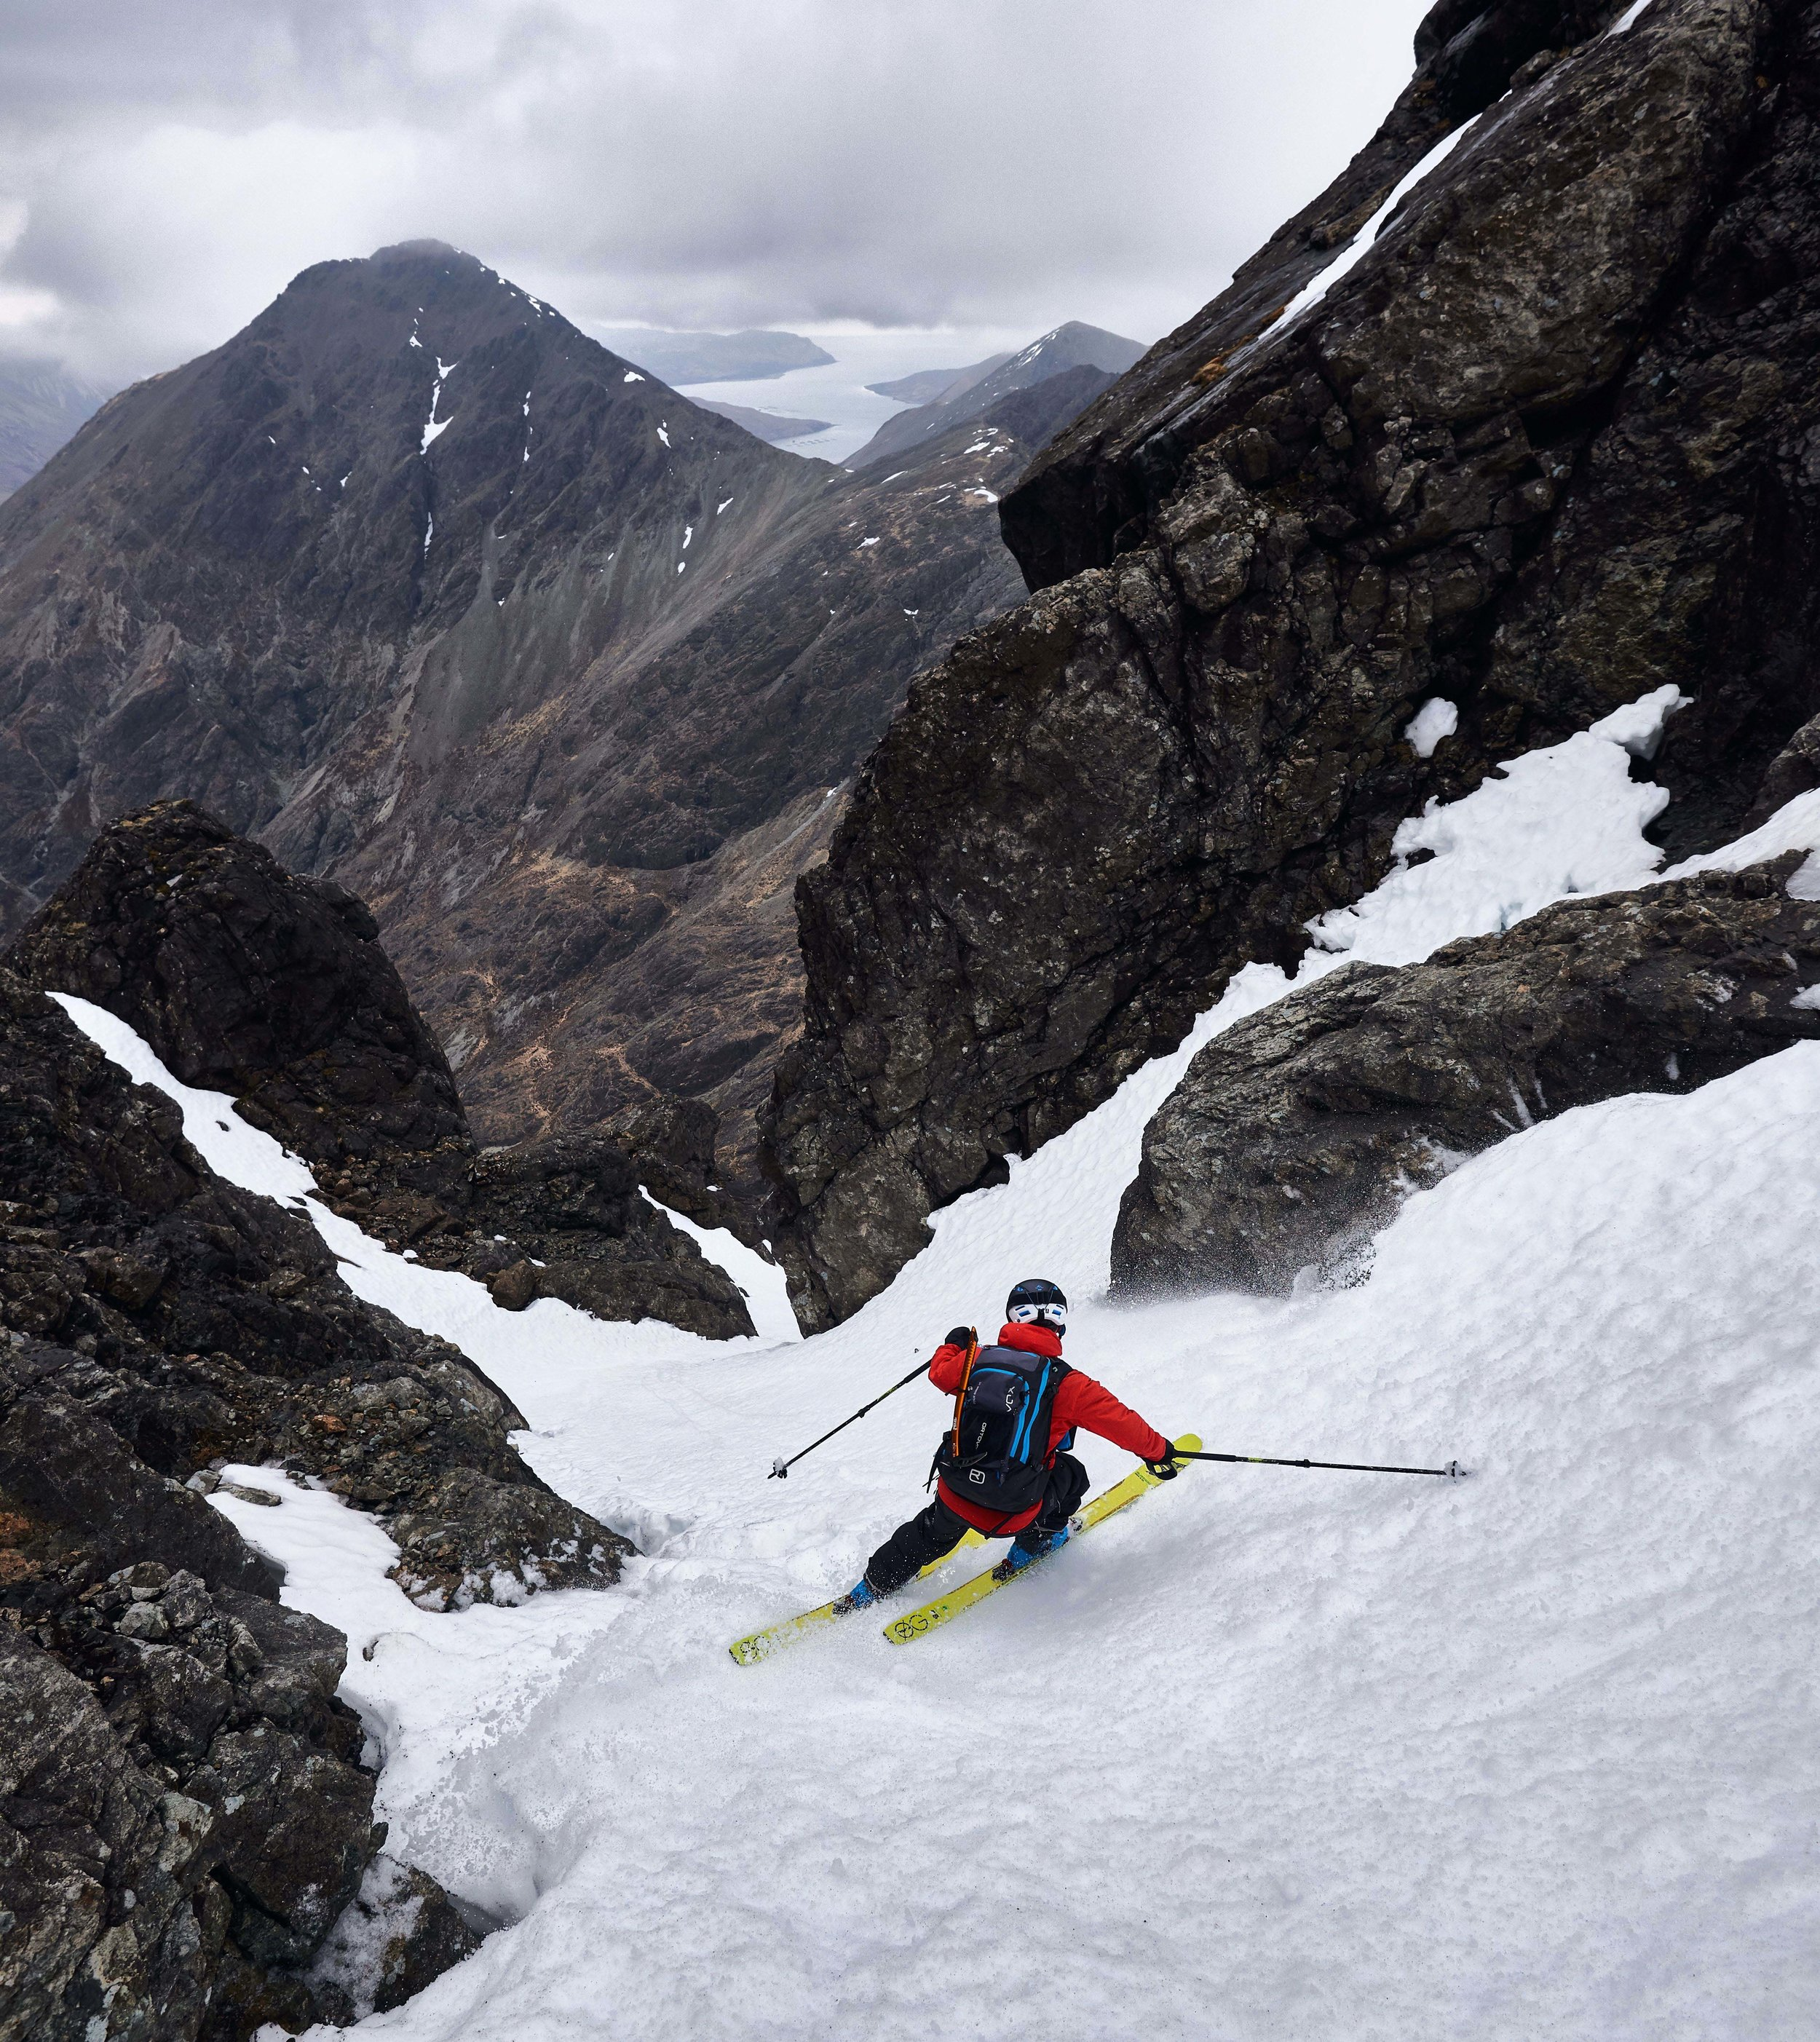 Dave negotiating the narrows of Summit Gully.